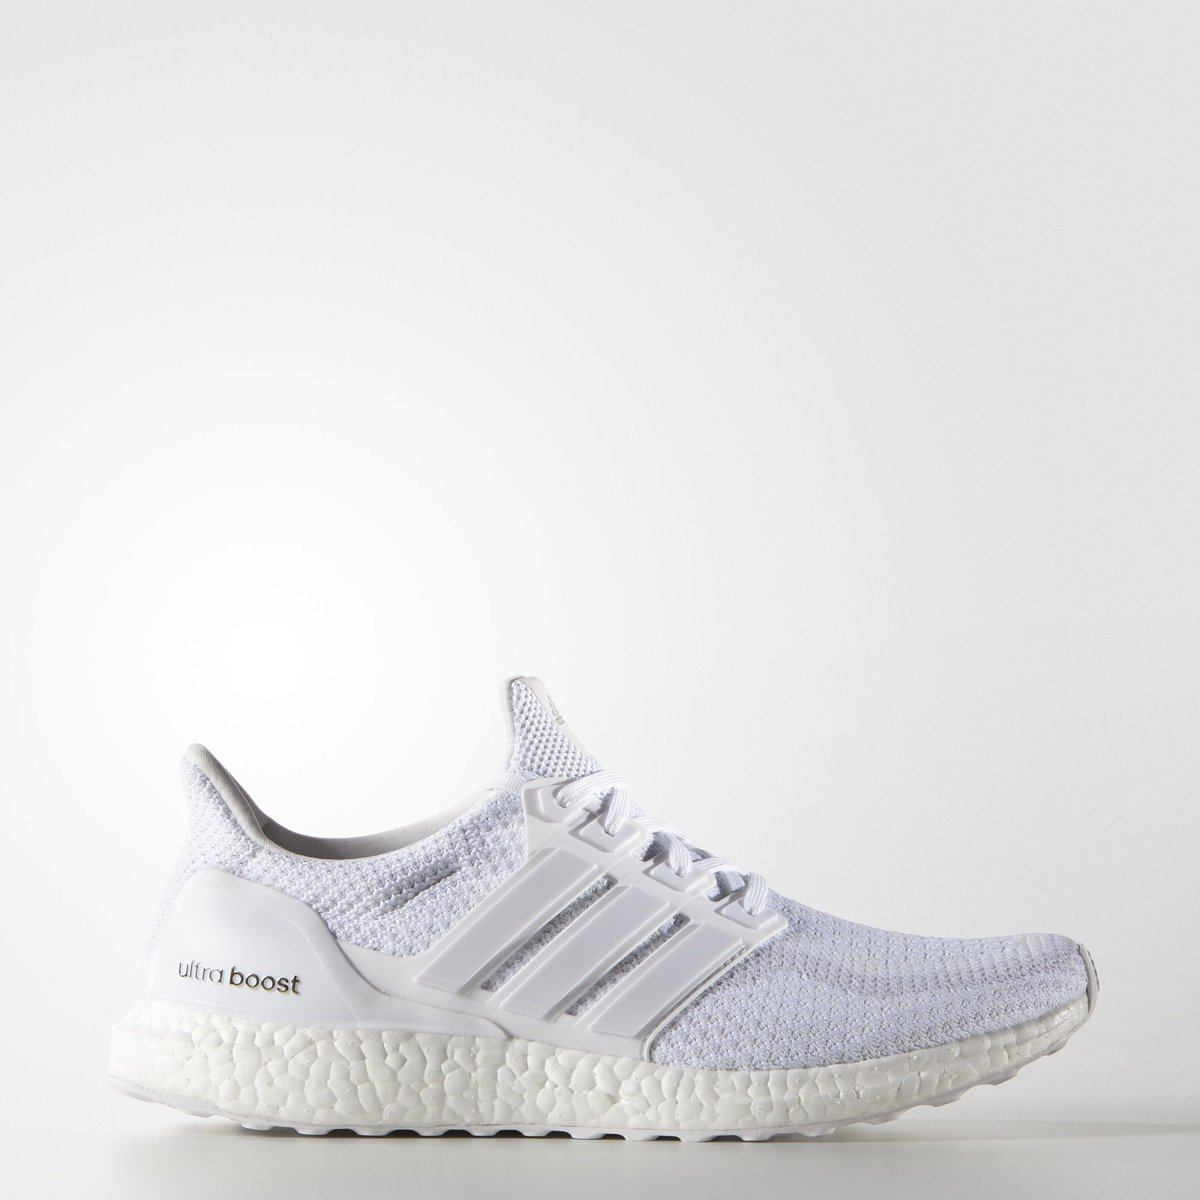 wholesale dealer b9ef7 8ec2a adidas alerts on Twitter